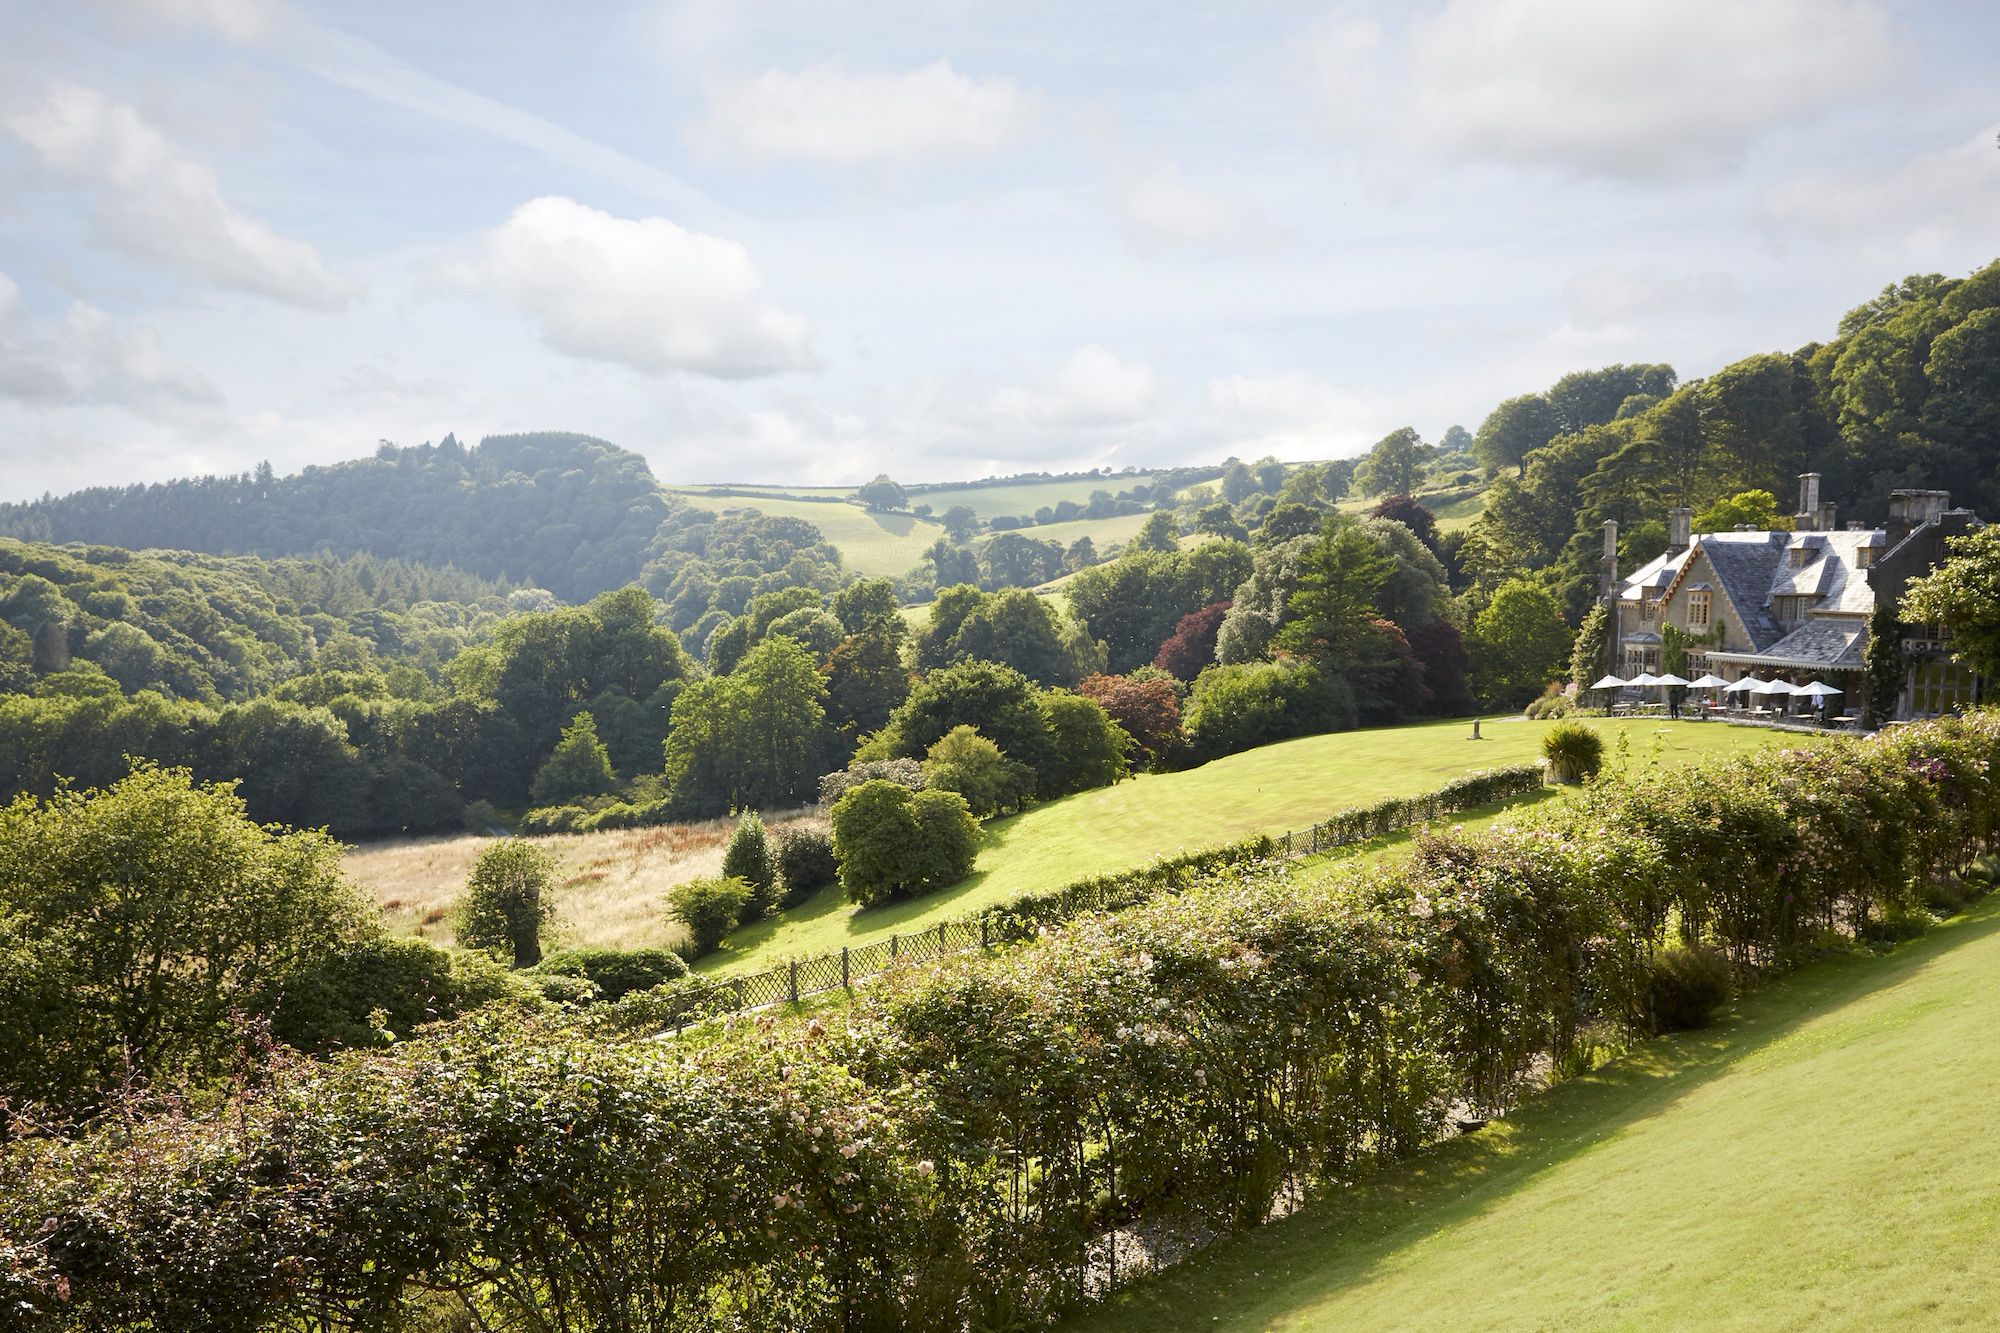 Country house hotels - best UK country houses - Cool Places to Stay in the UK